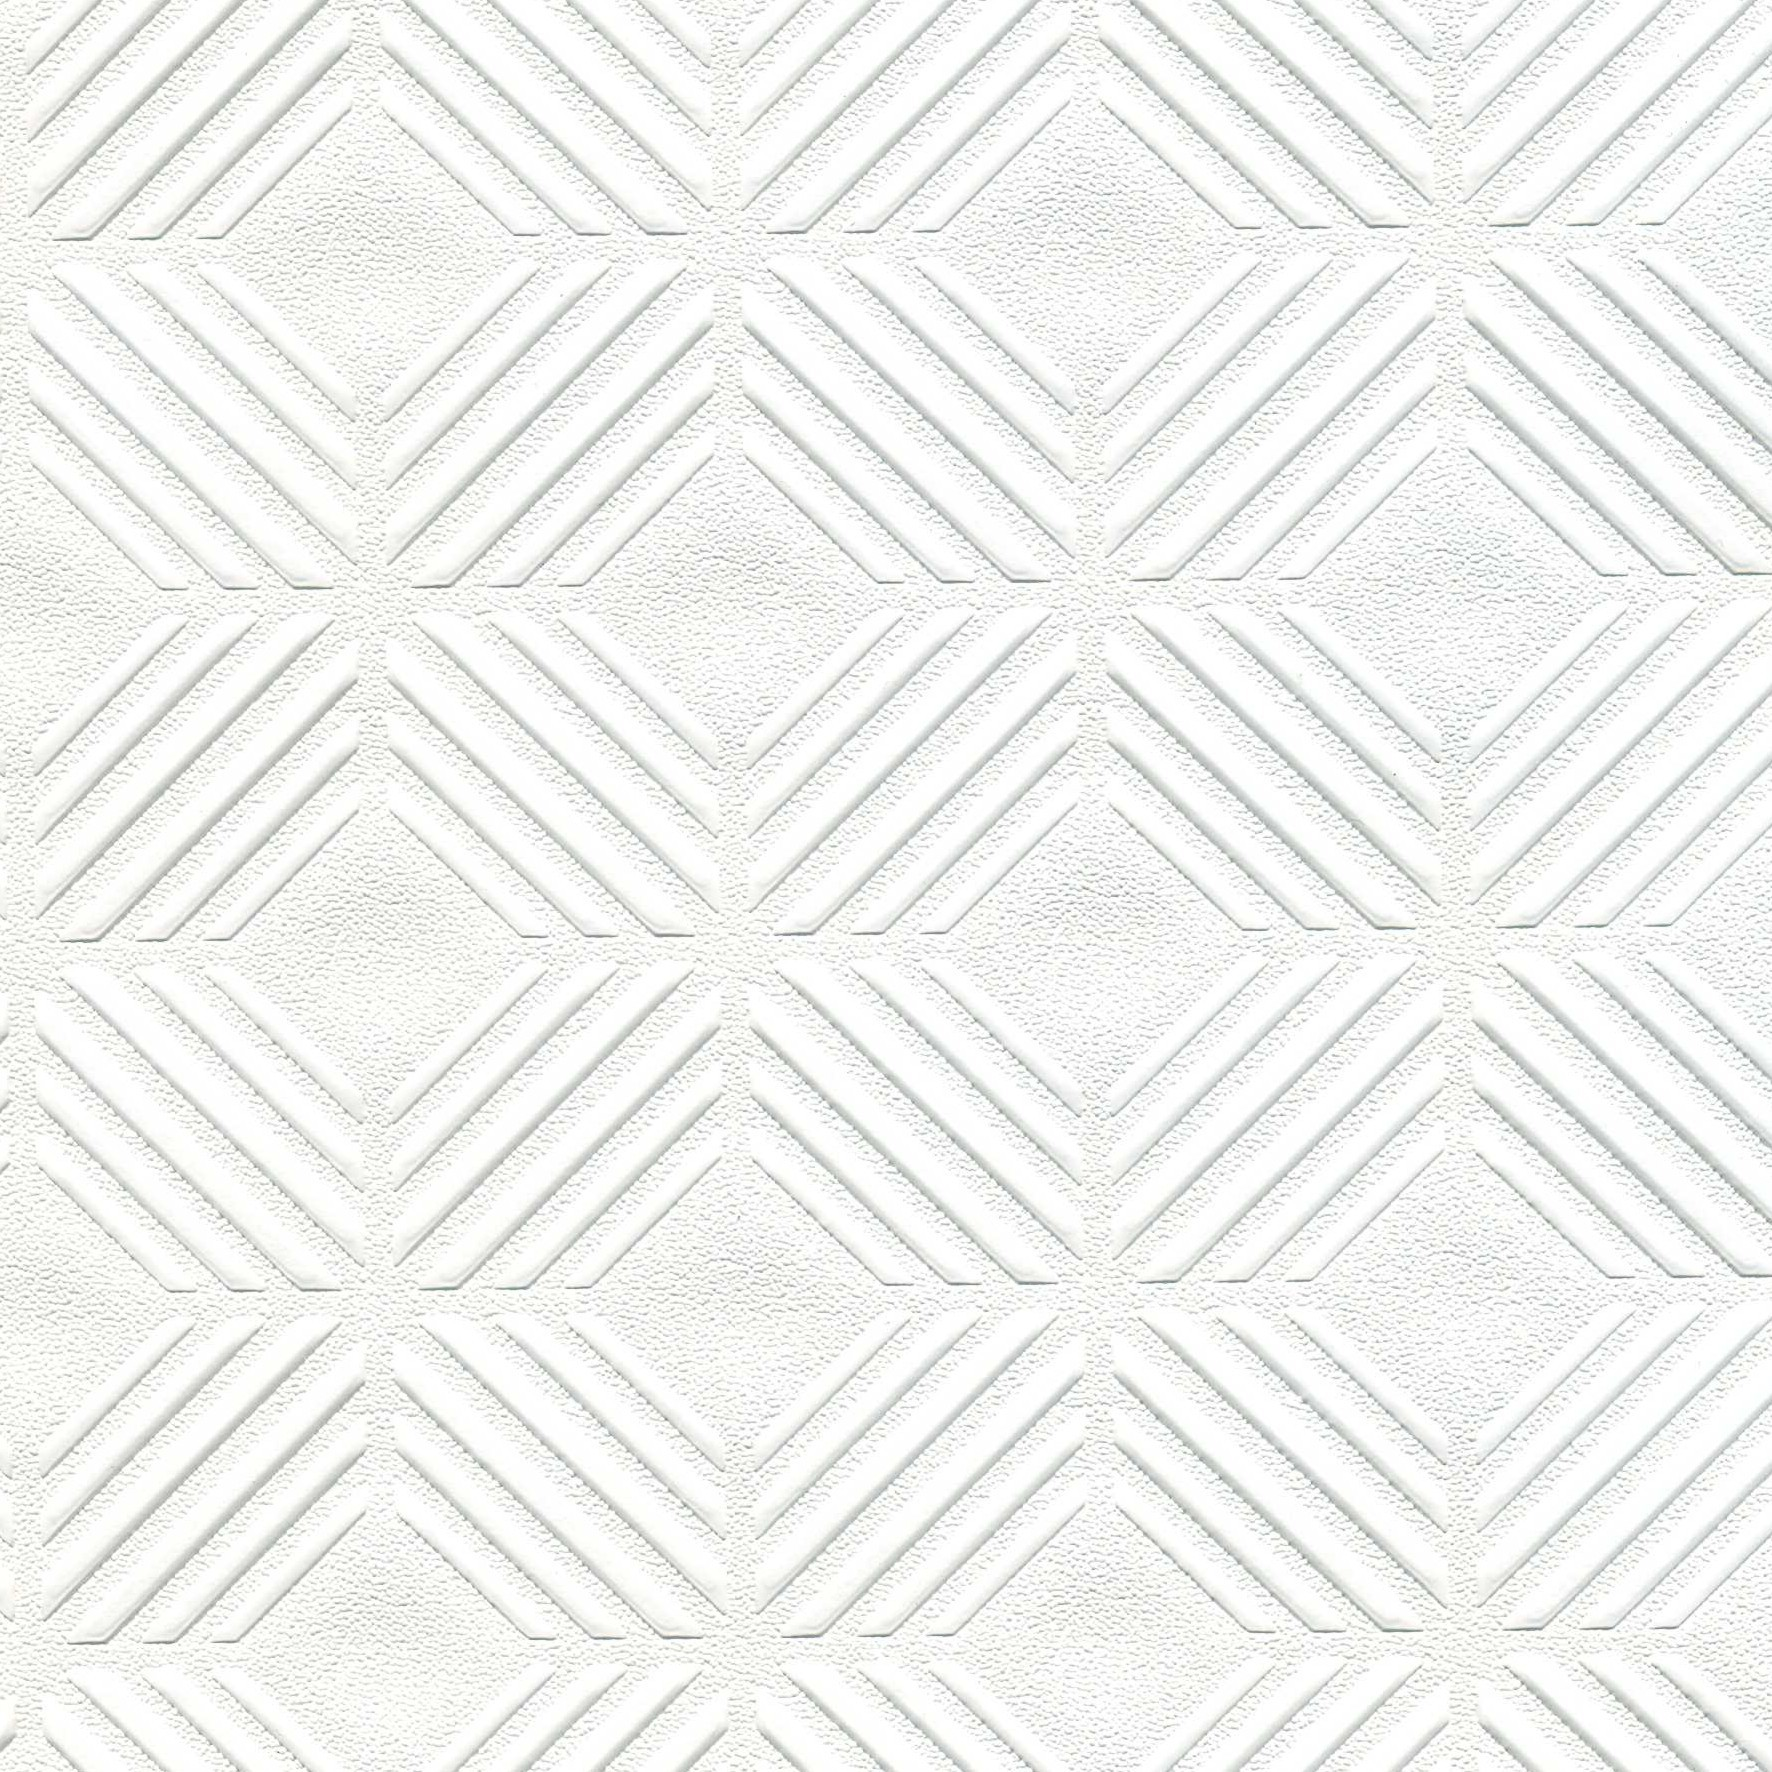 Gypsum tile high quality gypsum tile manufacturer from taiwan our products are made of an incombustible gypsum the regular gypsum ceiling tiles which contains gypsum plaster a high quality product that is free of dailygadgetfo Choice Image